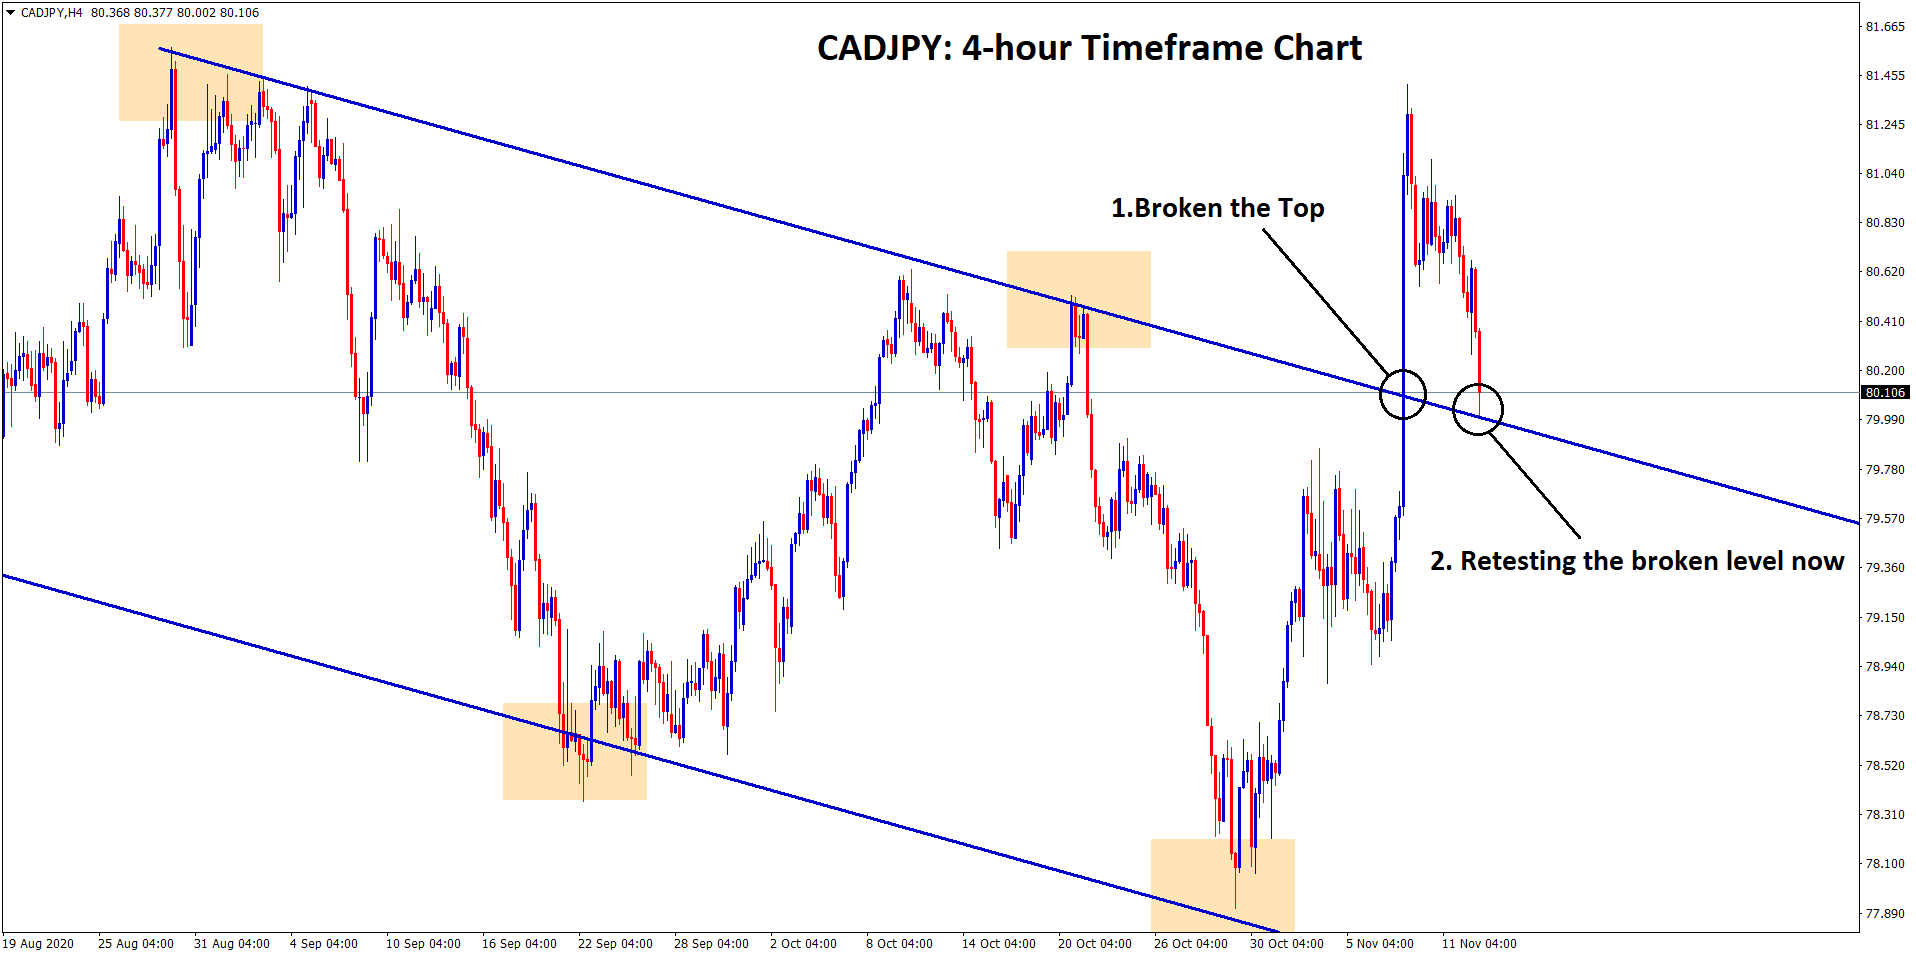 CADJPY retesting the broken level now in h4 channel chart